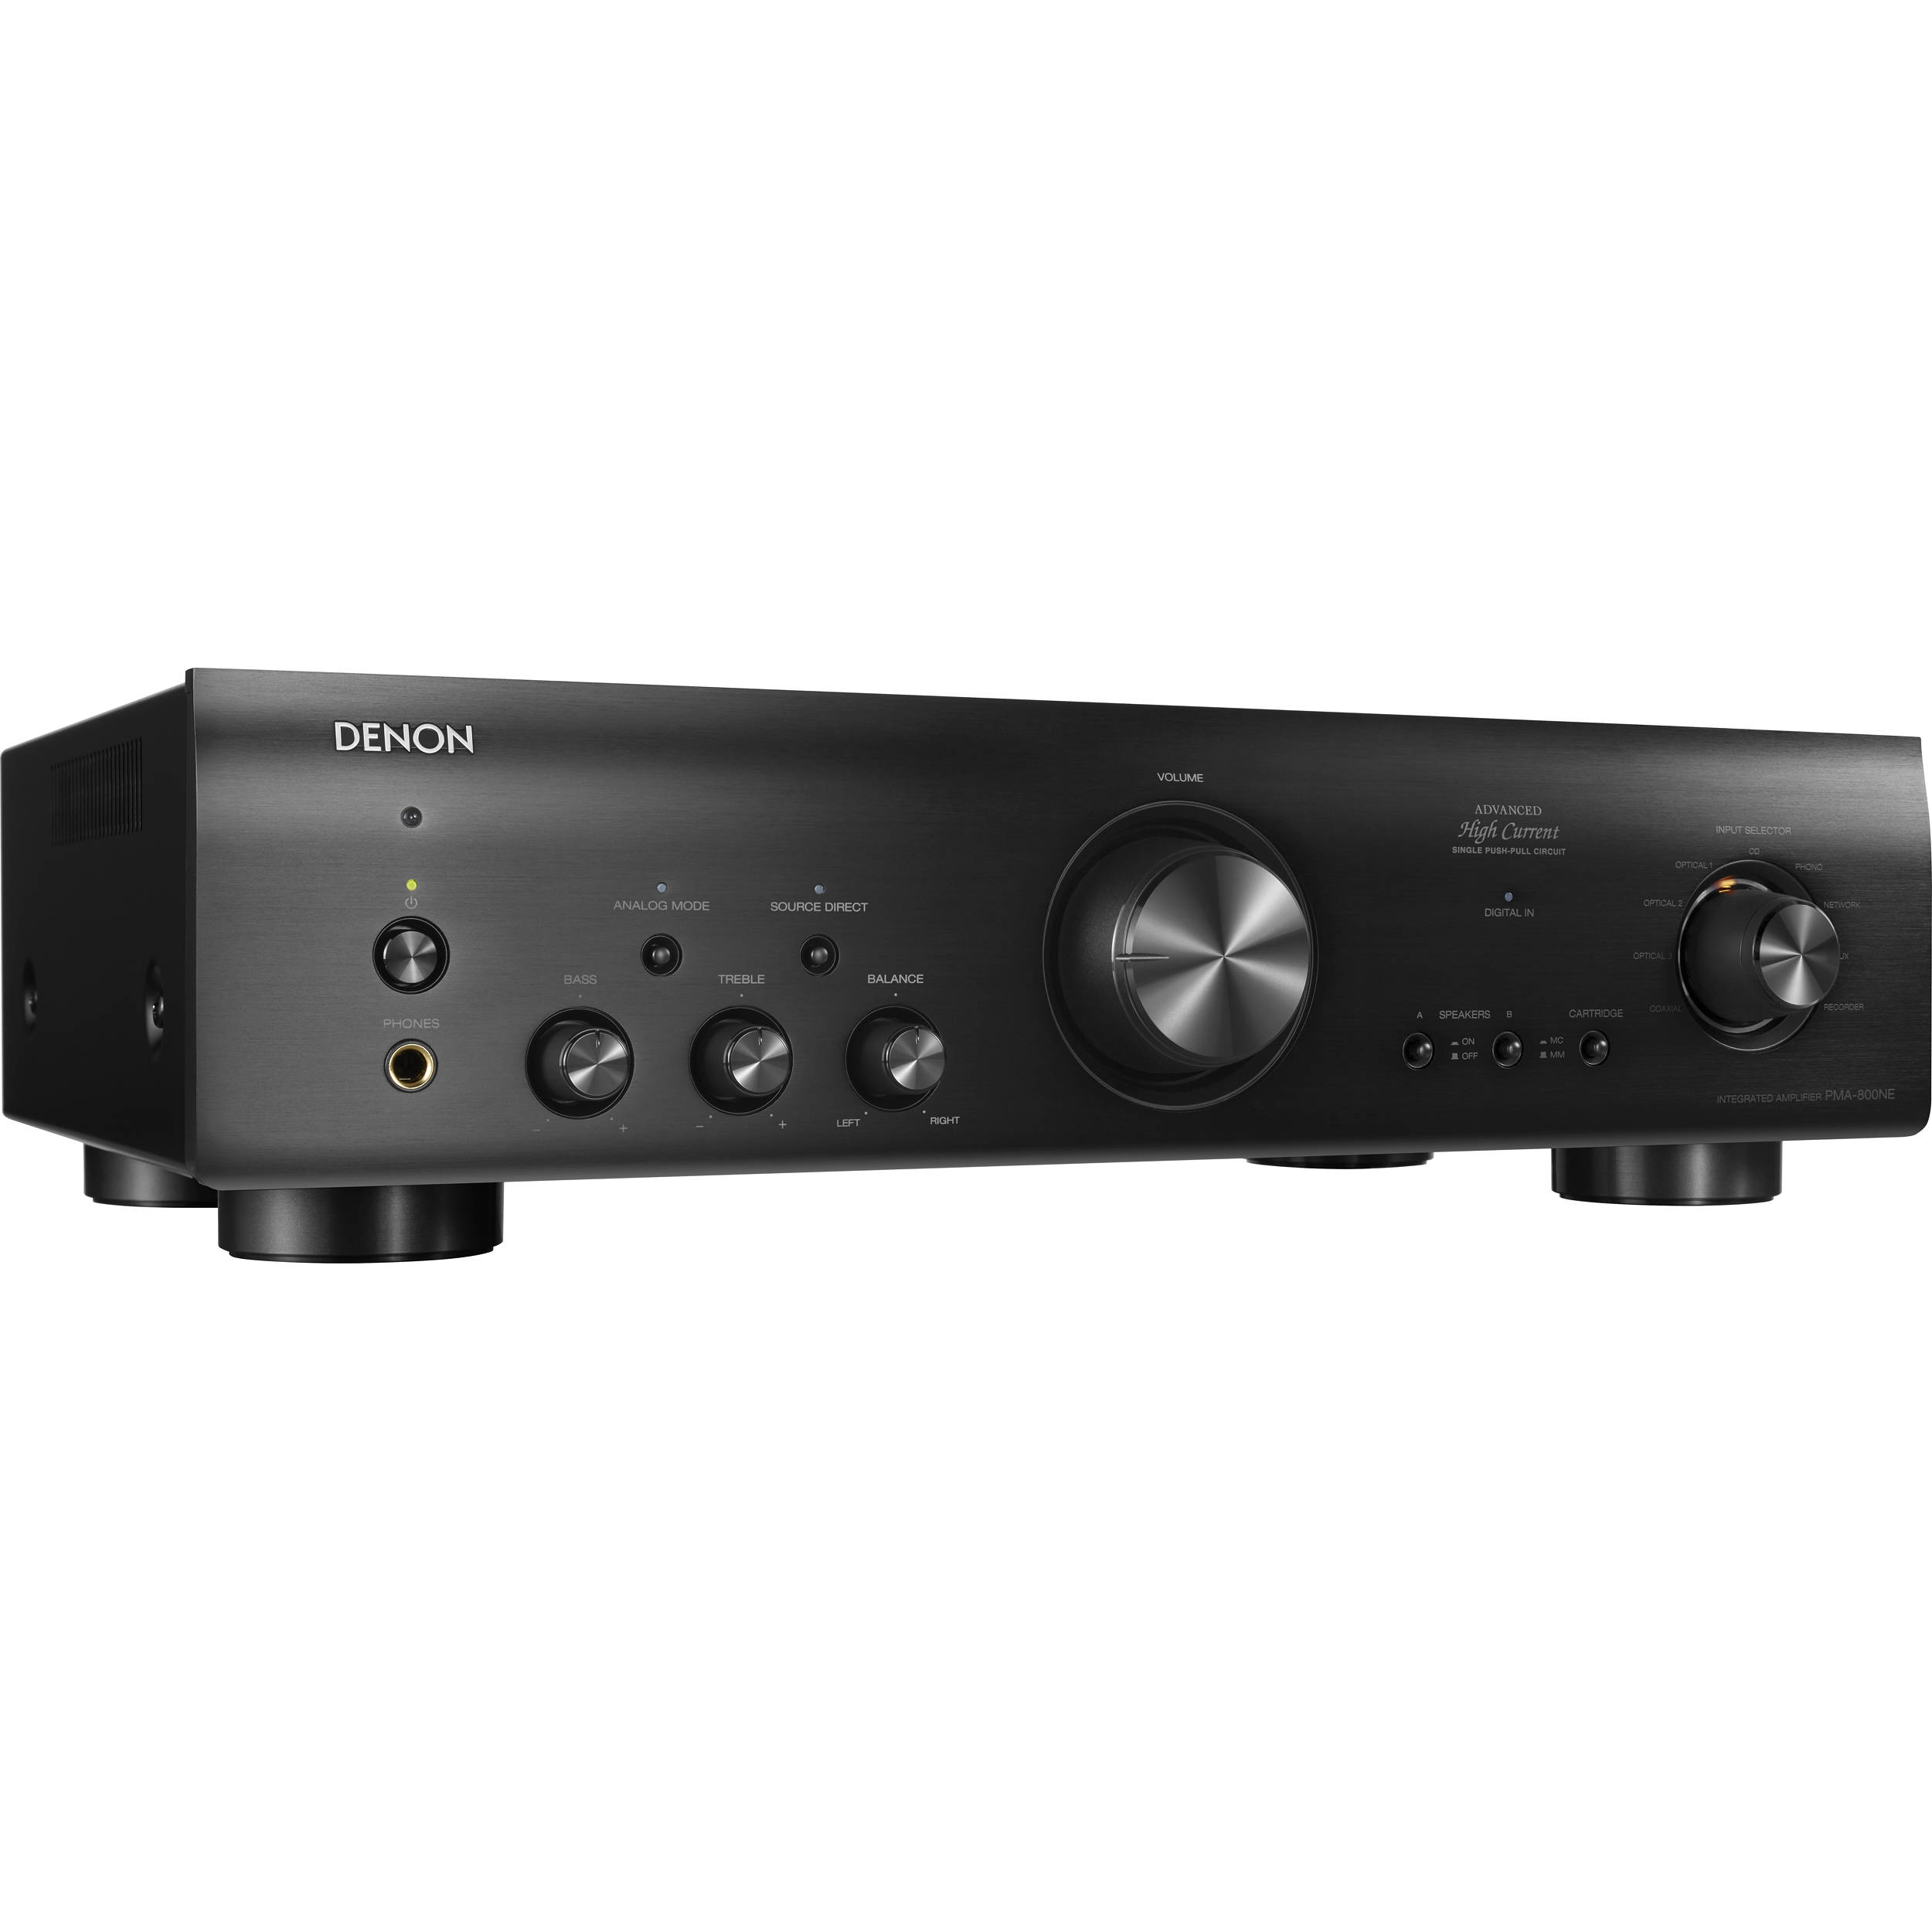 Denon PMA-800NE Stereo 100W Integrated Amplifier